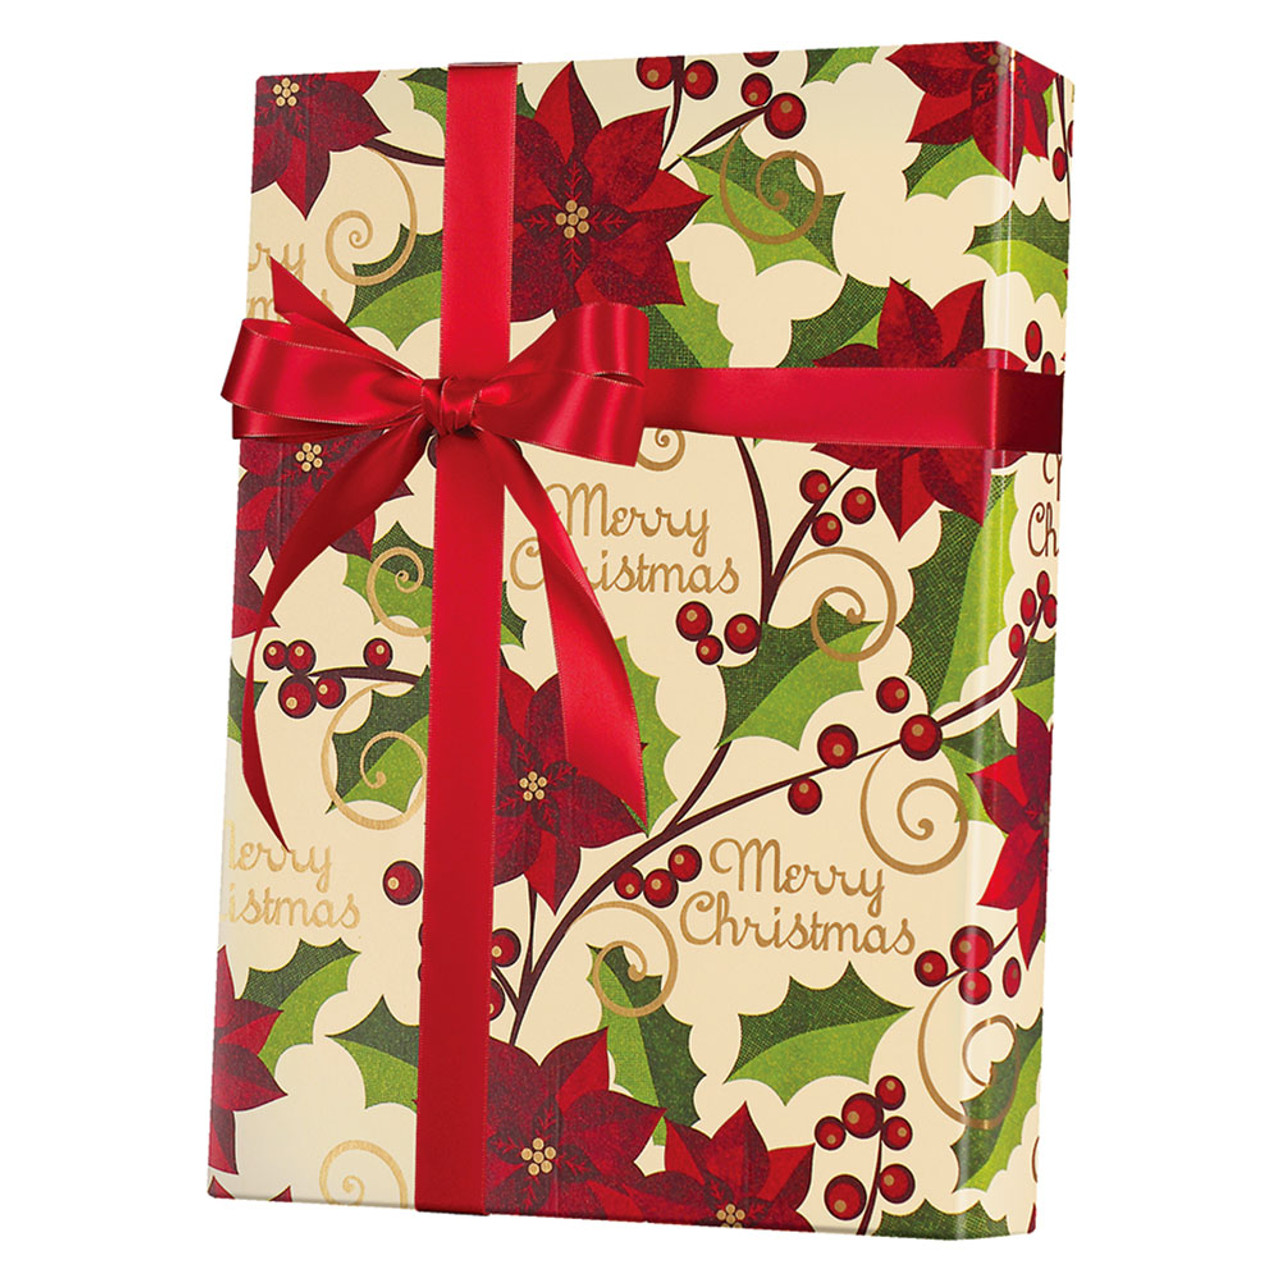 A Very Merry Christmas Gift Wrap - WrapSmart